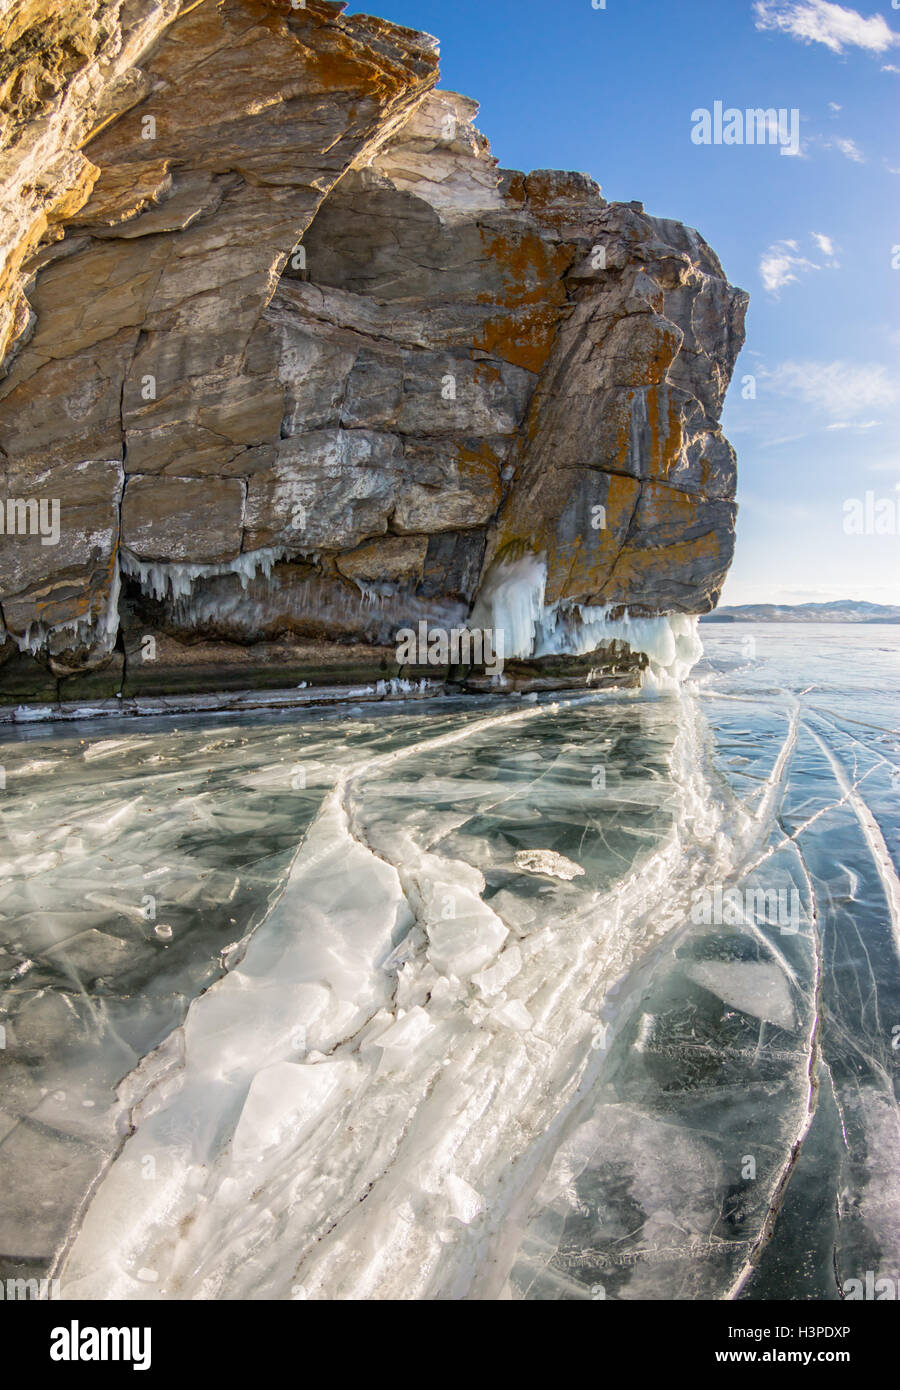 a crack in the ice and ice sokui on the rock. Olkhon Island. Lake Baikal - Stock Image